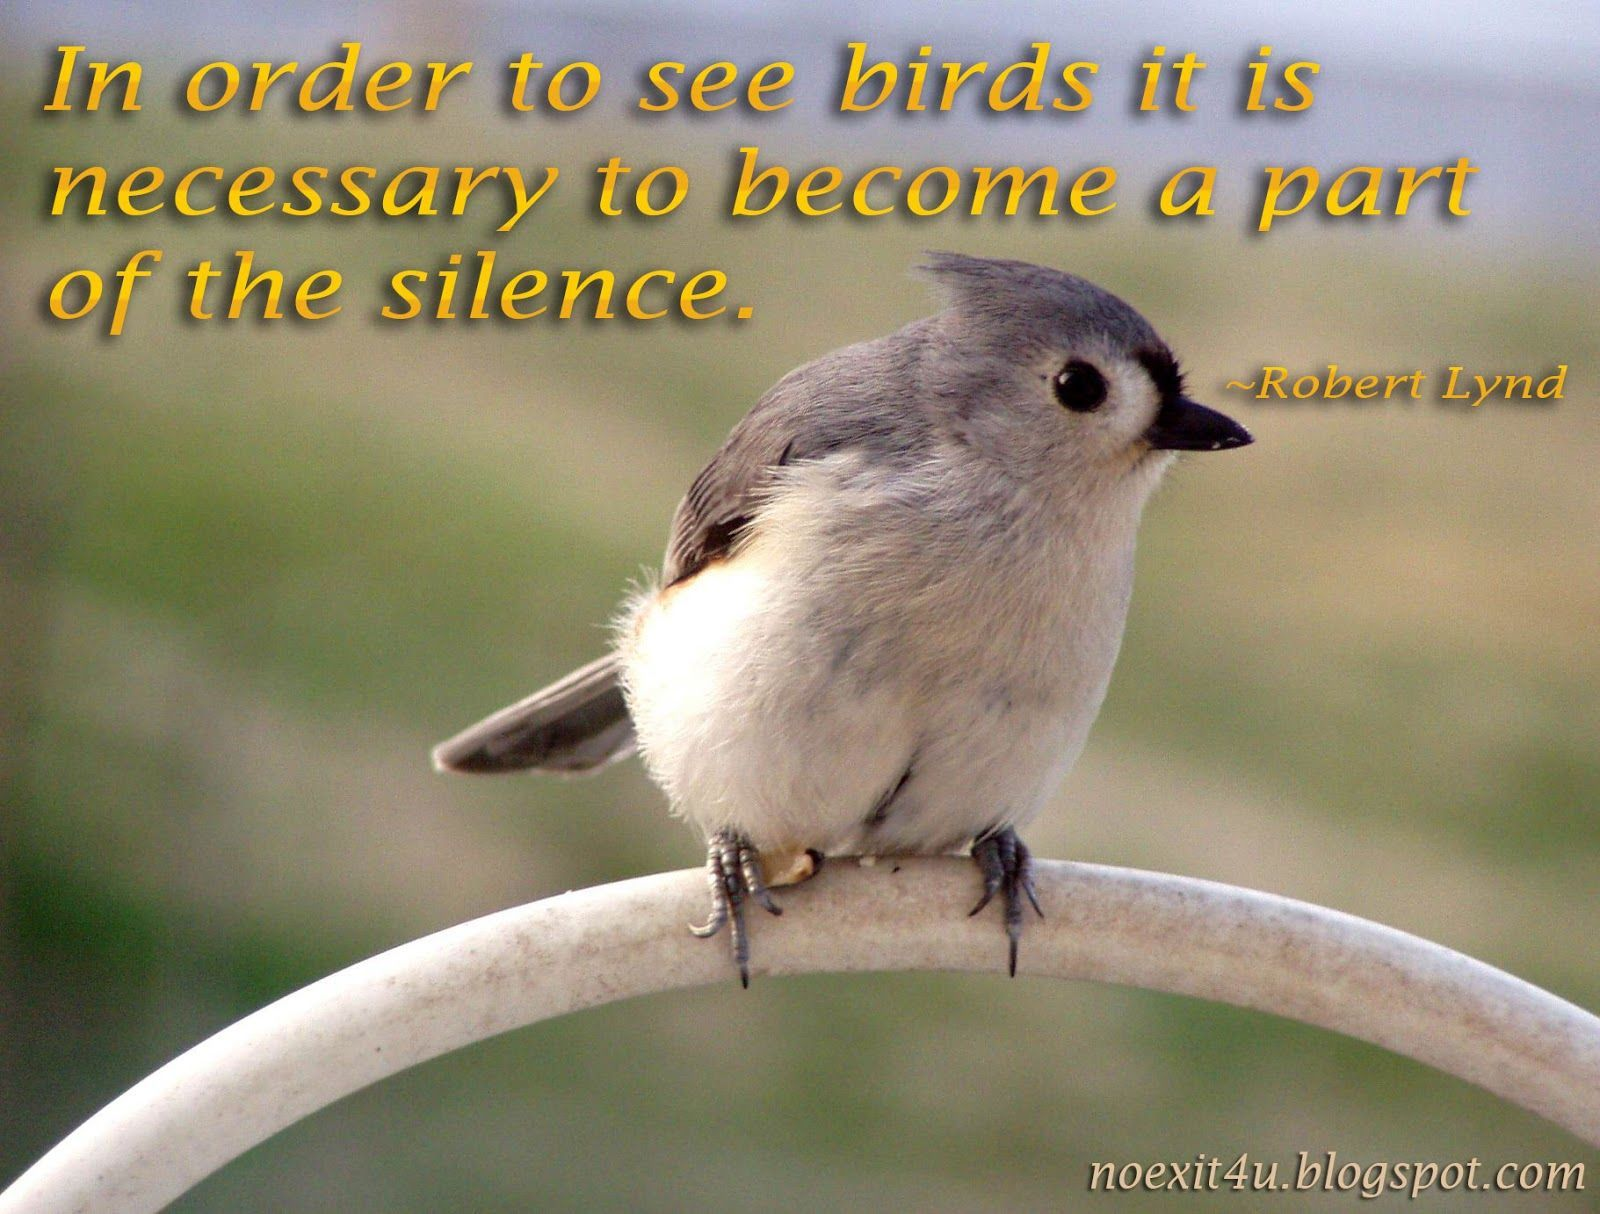 Bird Watching Quotes Google Search Bird Quotes Love Birds Quotes Nature Quotes